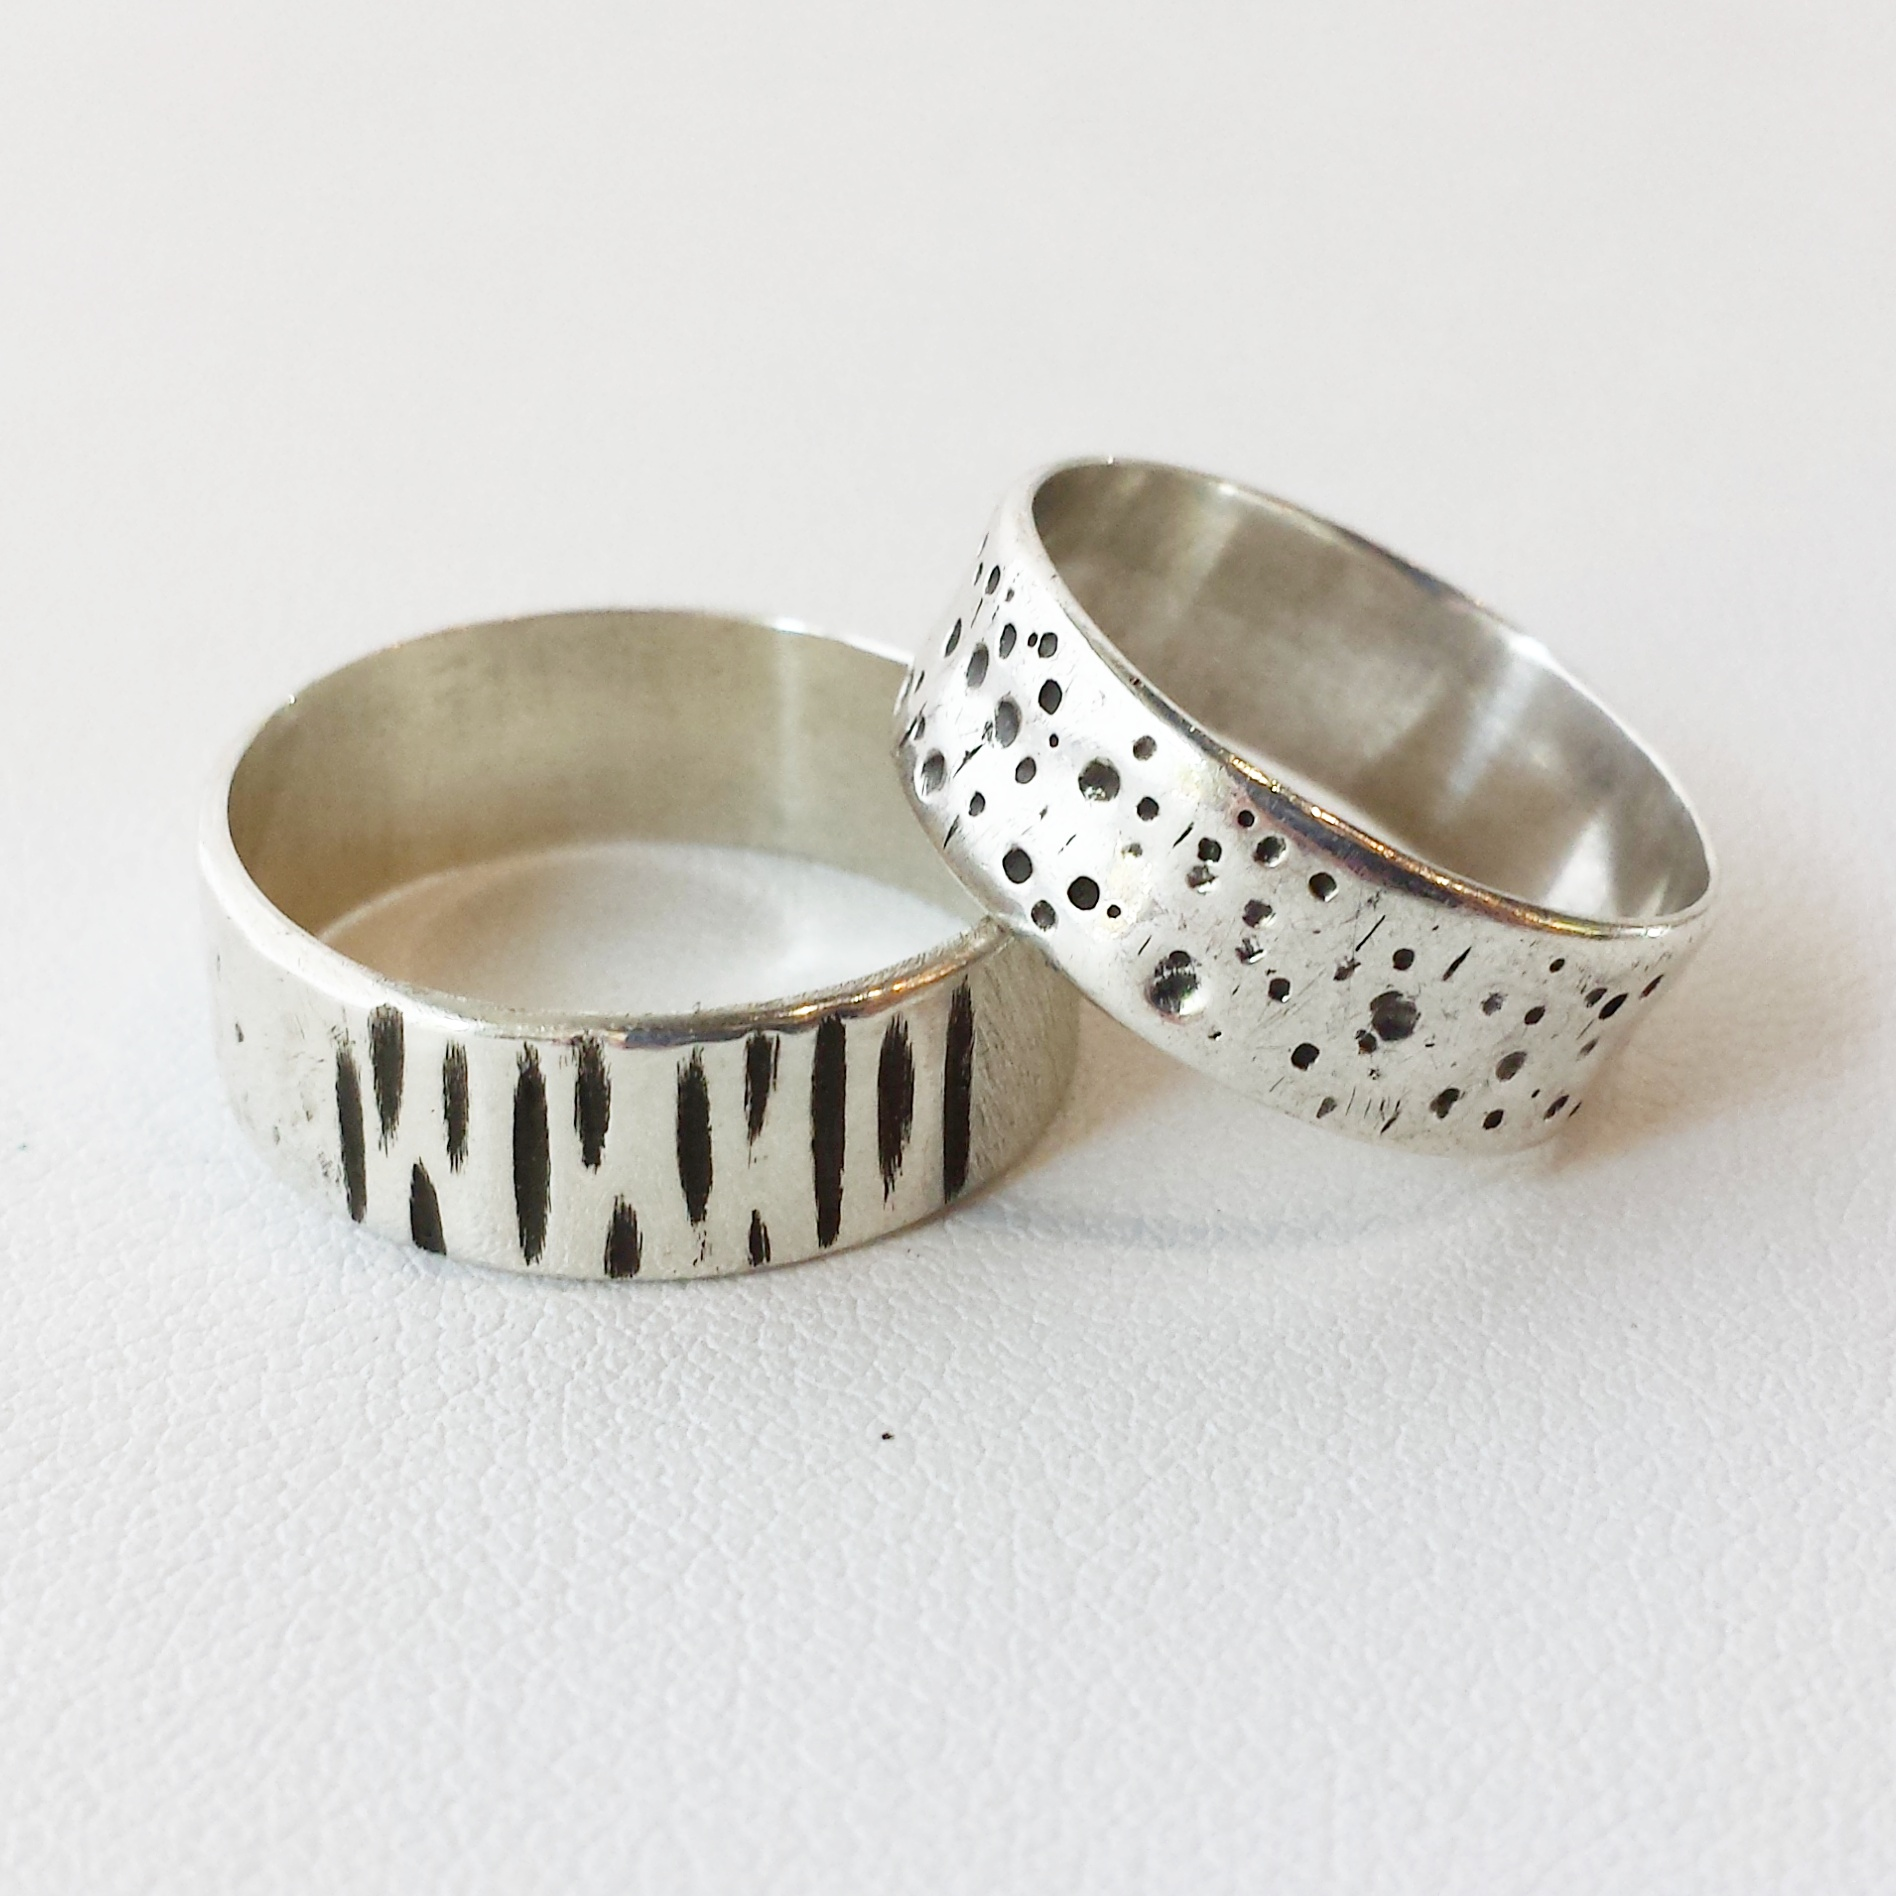 TEXTURED BAND RING    October 29, Saturday 12:00pm-3:00pm    December 4, Sunday 11:00am-2:00pm